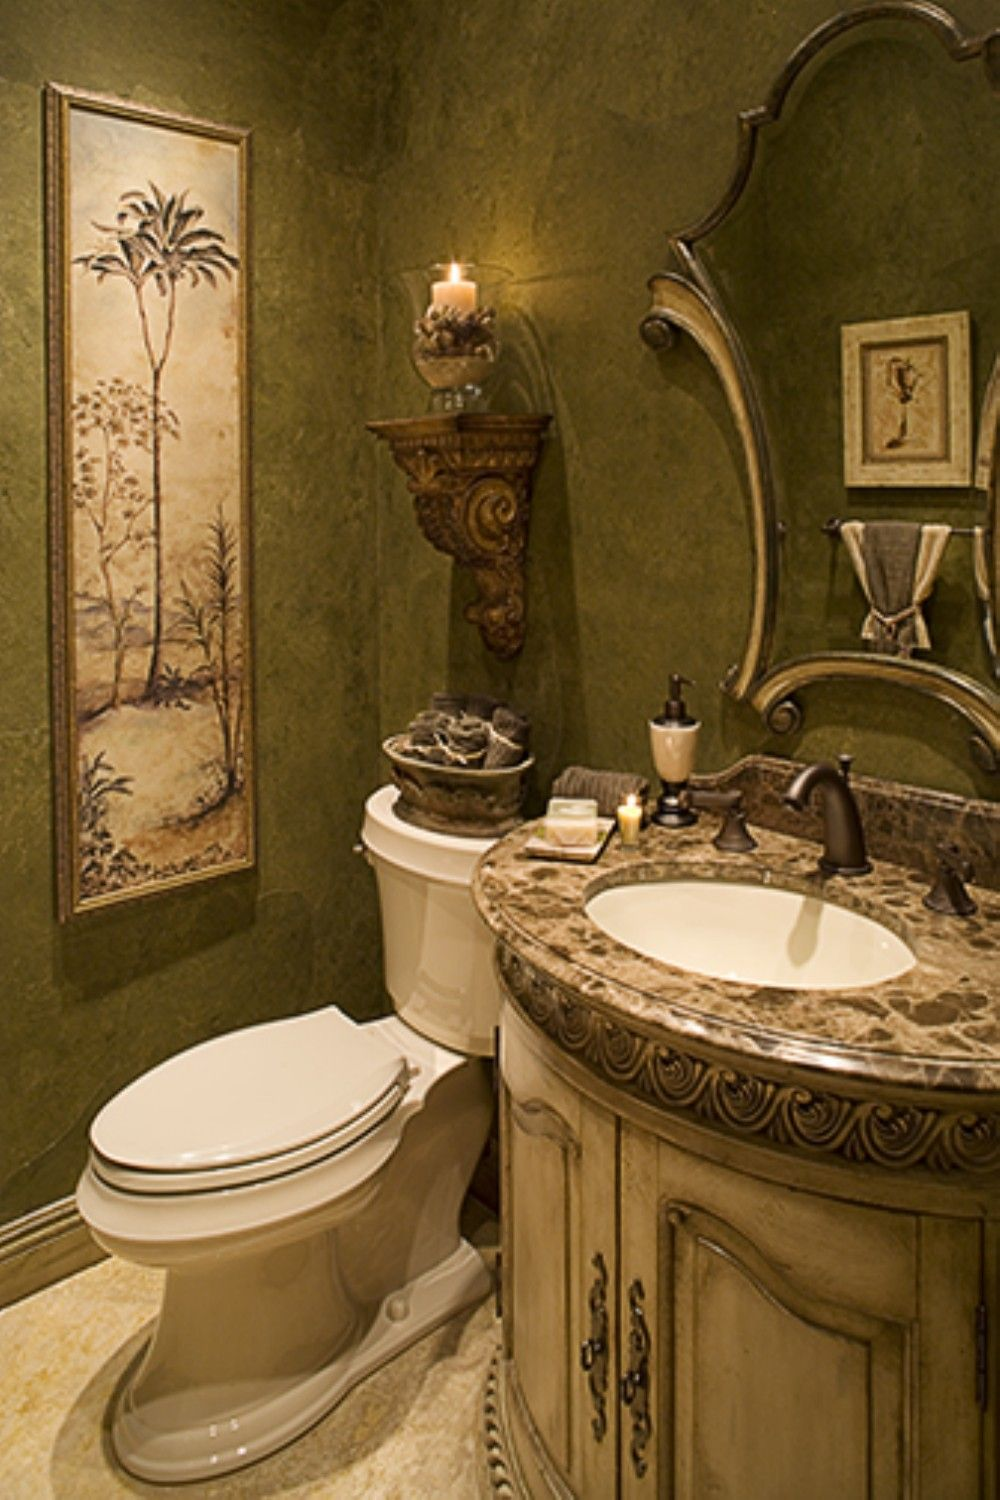 Awesome 82 luxurious tuscan bathroom decor ideas https for Tuscan bathroom ideas